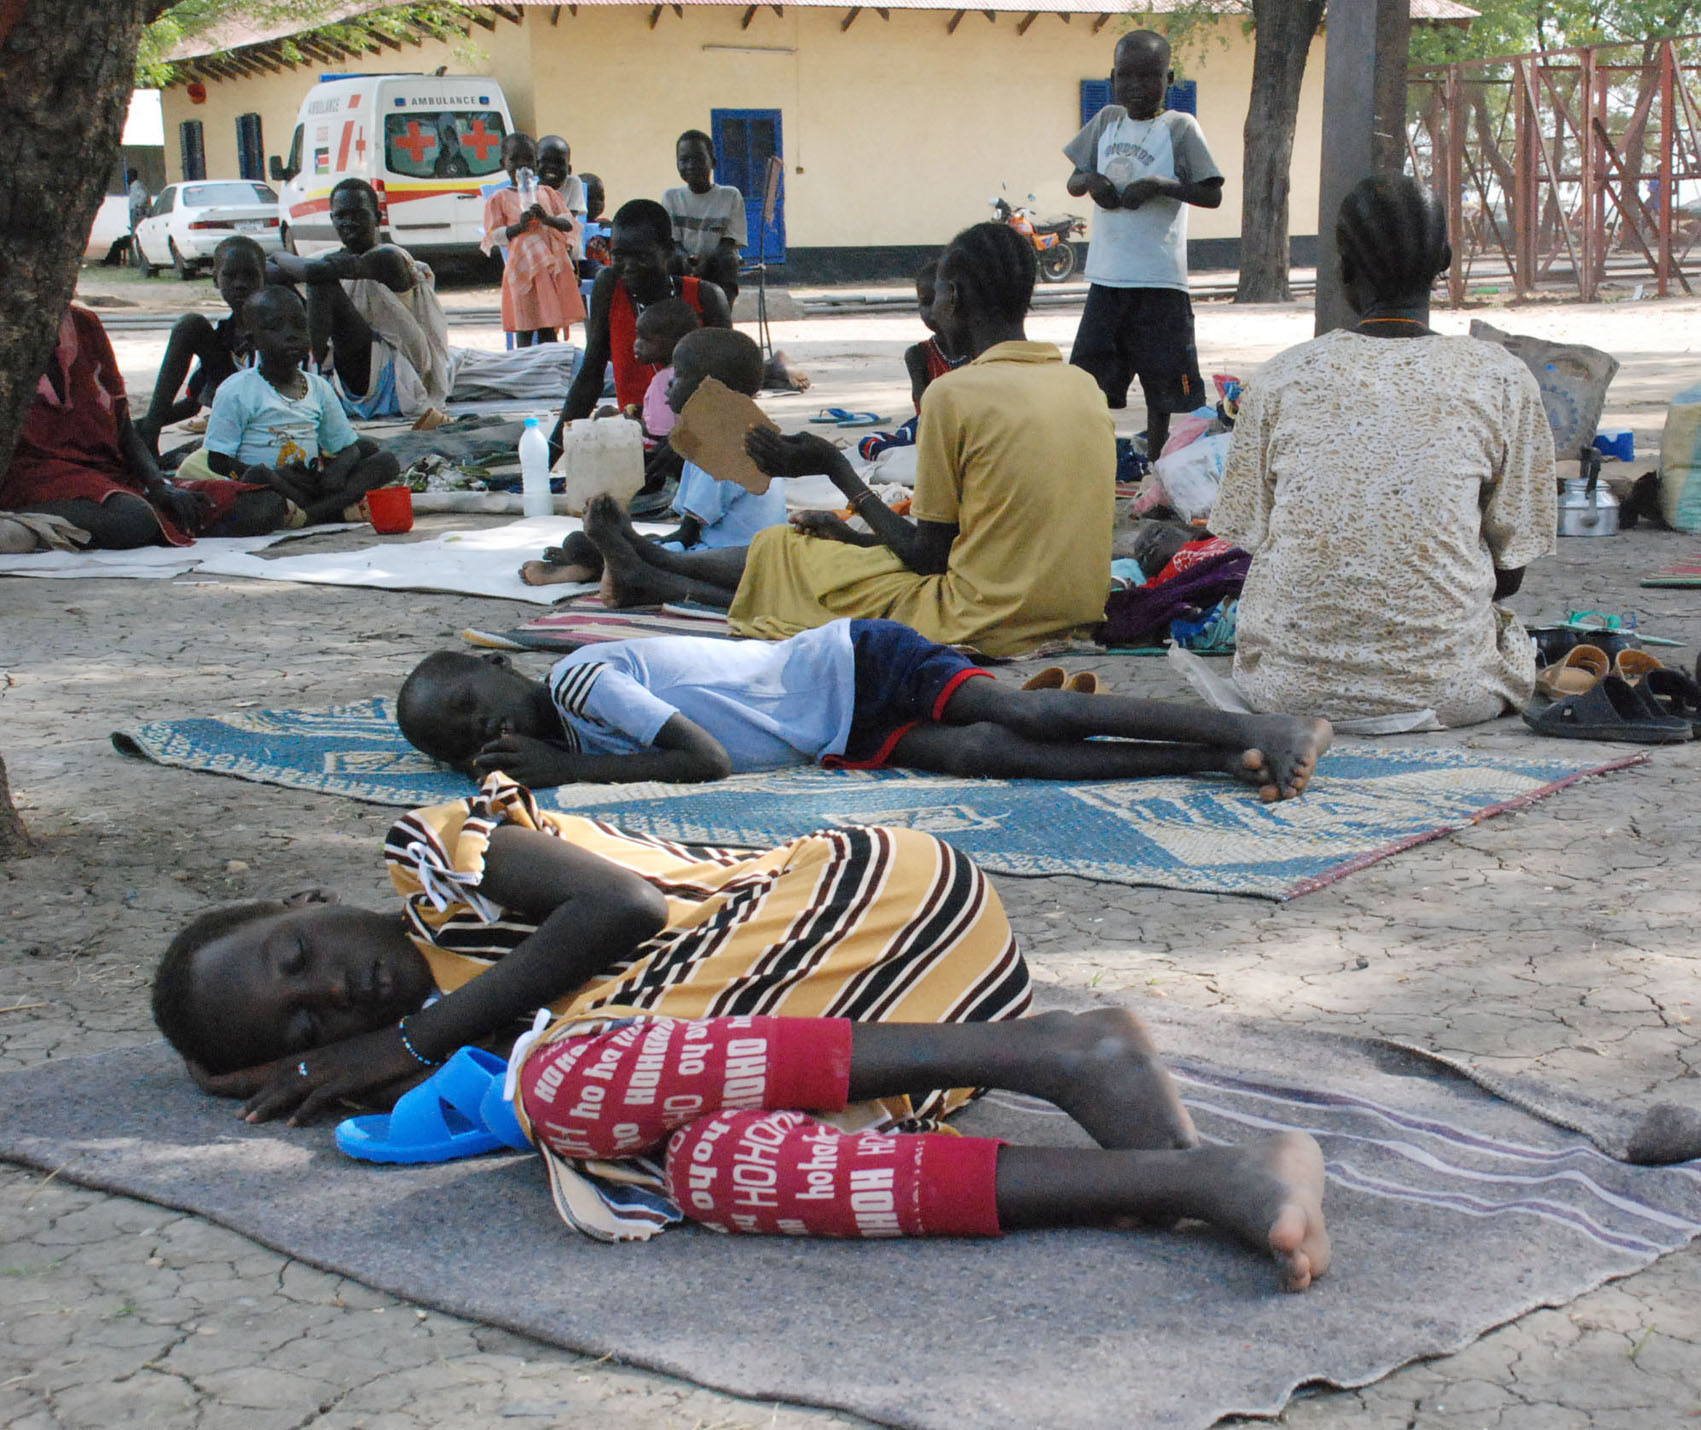 Patients suffering from kala azar disease rest in the grounds of Malakal hospital, Upper Nile state